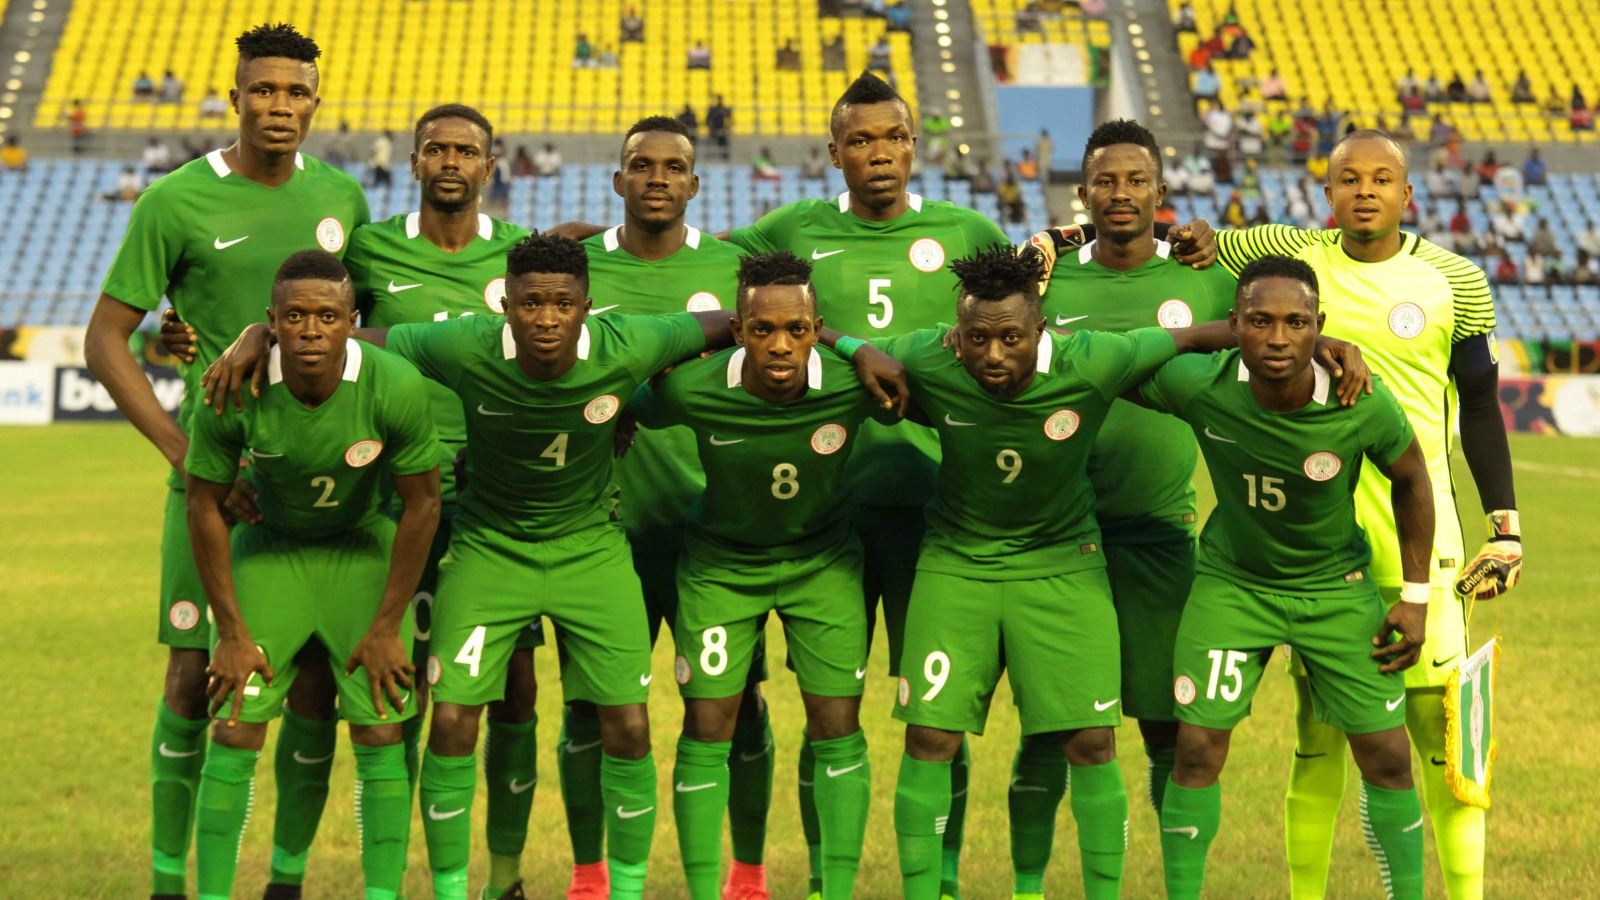 WAFU Cup: Nigeria Beat Ghana To Advance To Semi-Final